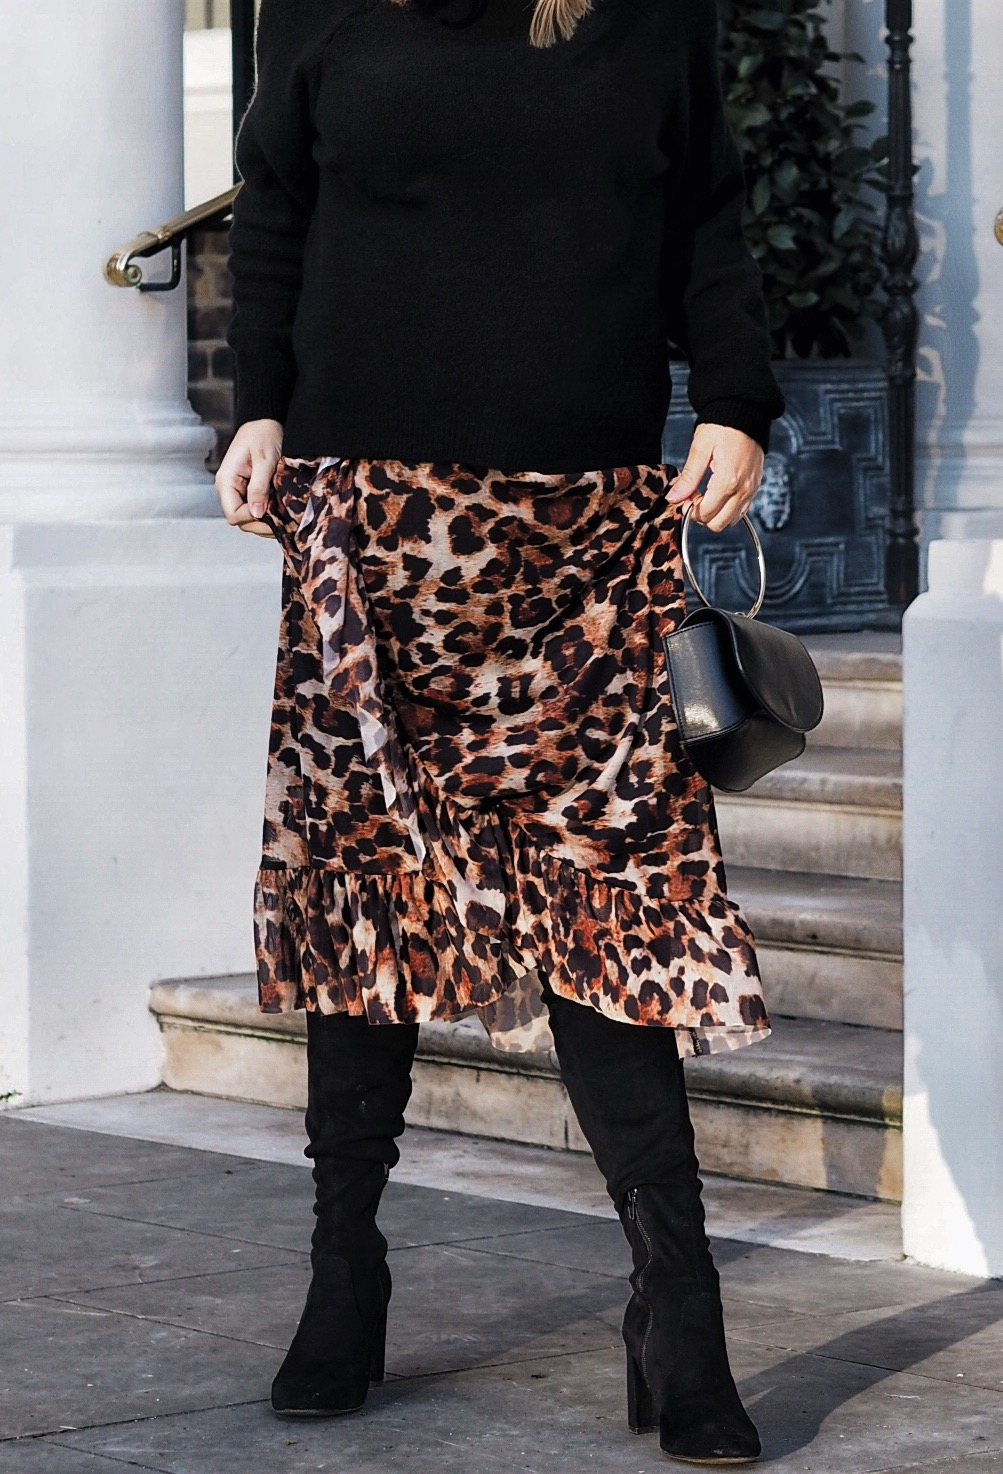 463bef285 9 Ways To Wear Leopard Print Like A Pro - Petite Side of Style